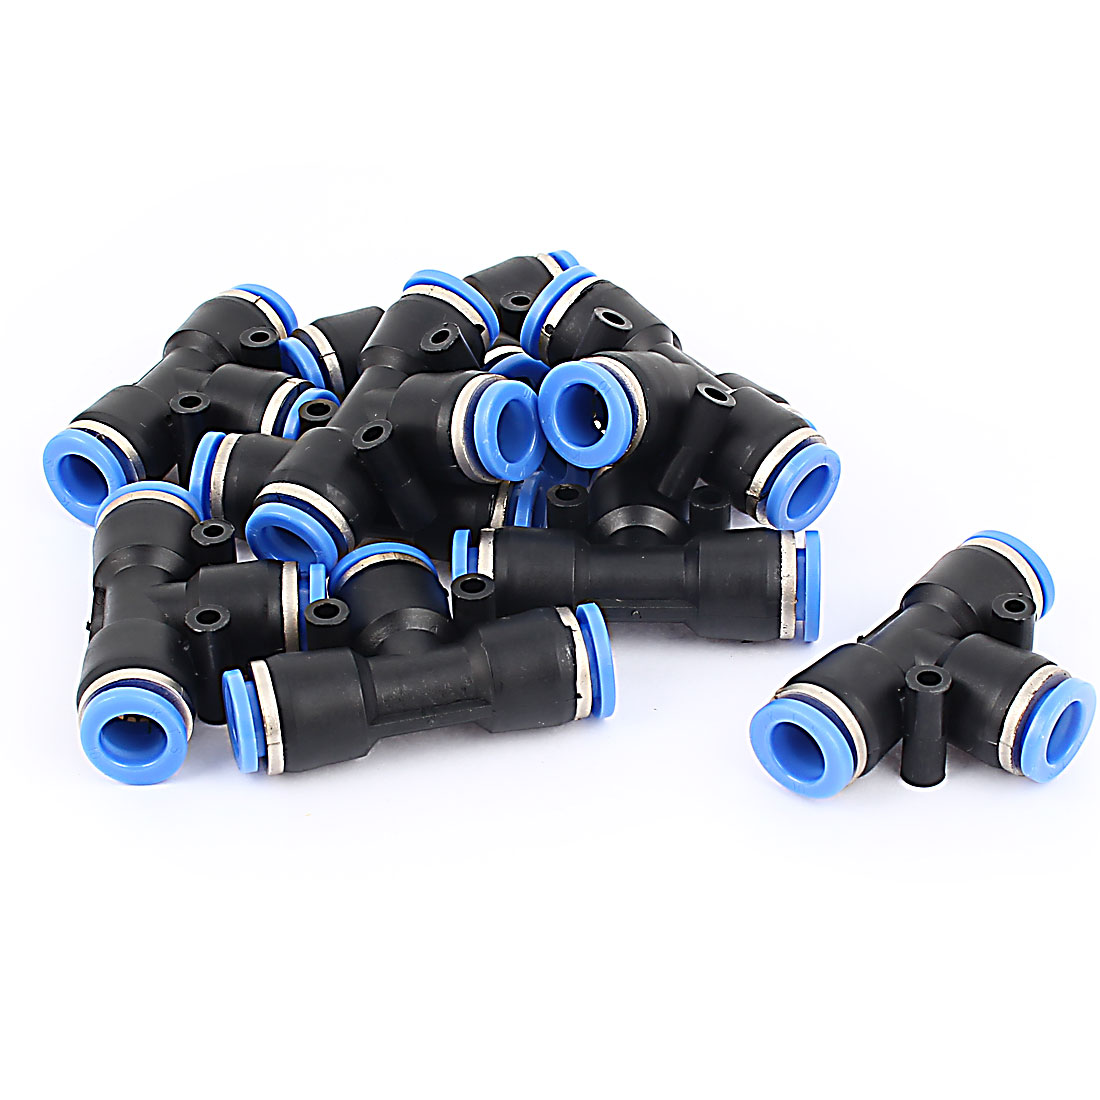 10 Pcs PE10 T Shaped 3 Way 10mm to 10mm Air Pneumatic Quick Fitting Coupler